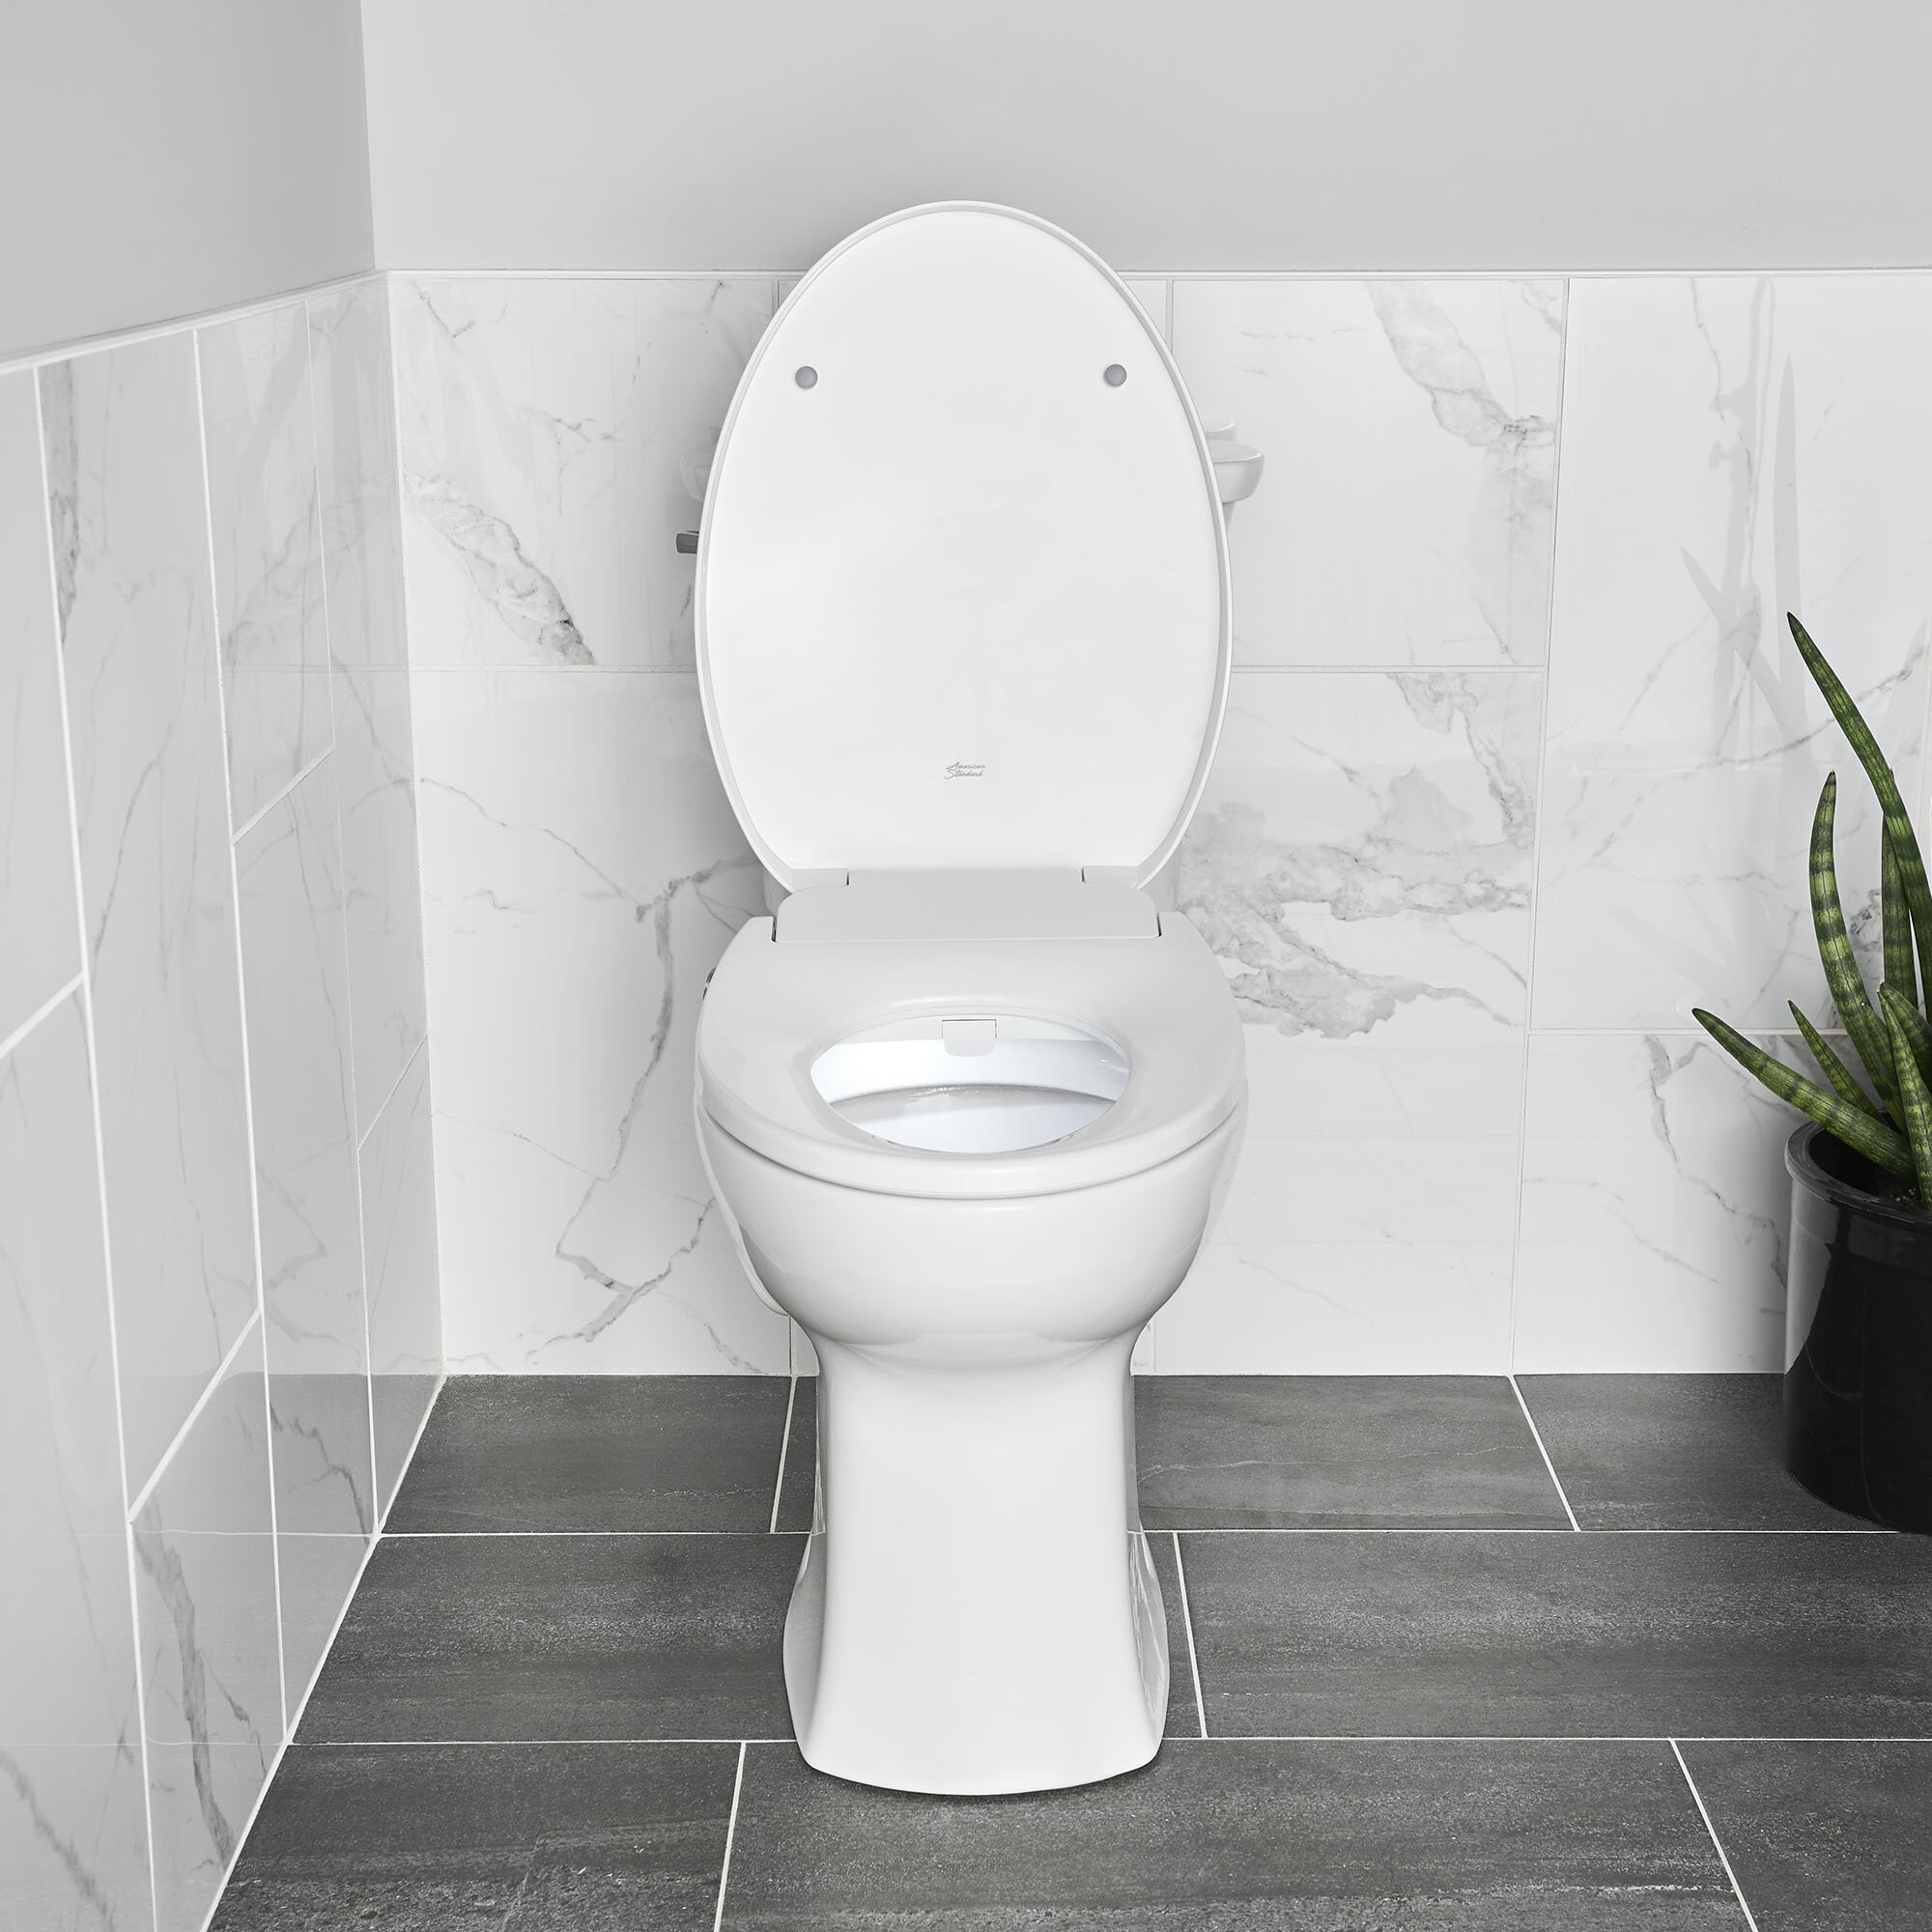 American Standard Bathroom White Elongated Cover Non Electric Bidet Toilet Seat